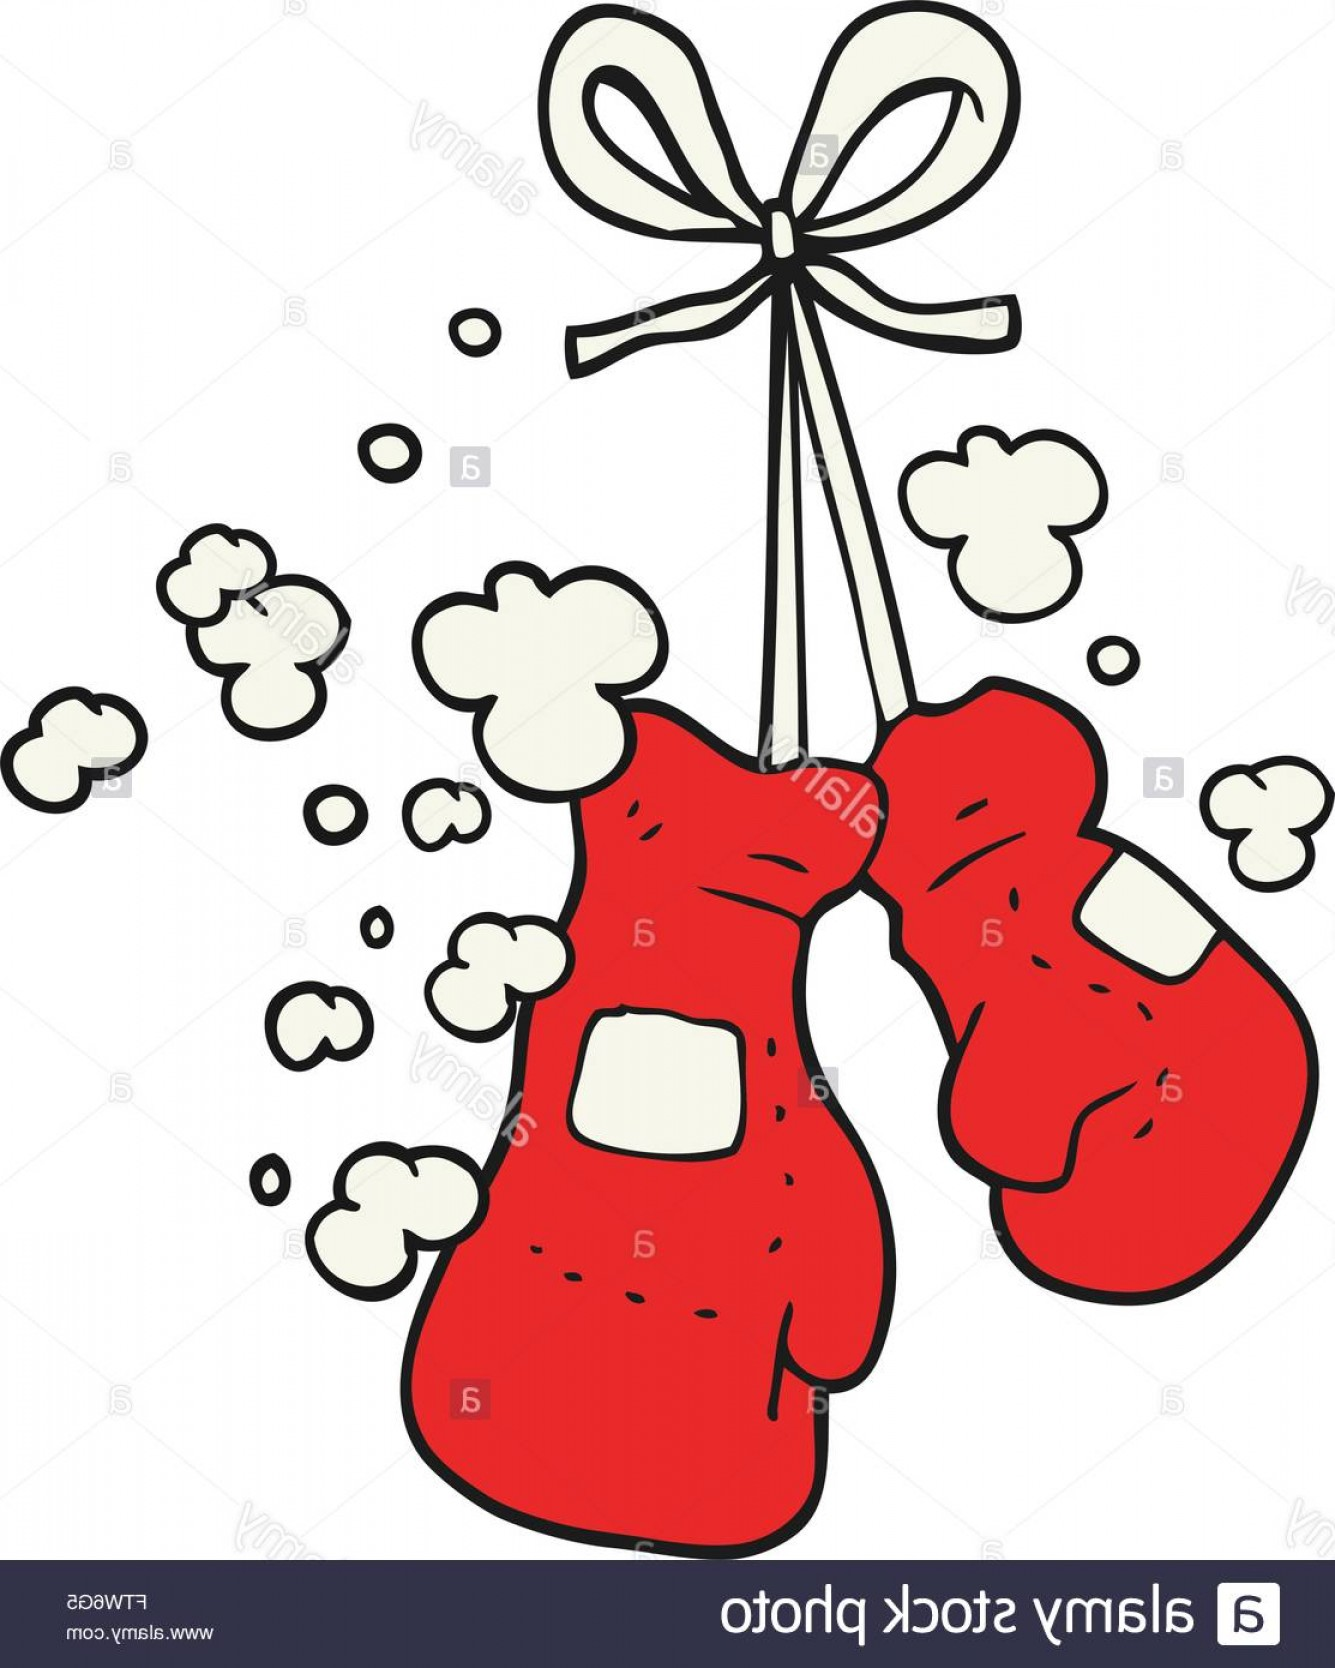 Pictures Of Boxing Gloves Vector Art: Stock Photo Freehand Drawn Cartoon Boxing Gloves